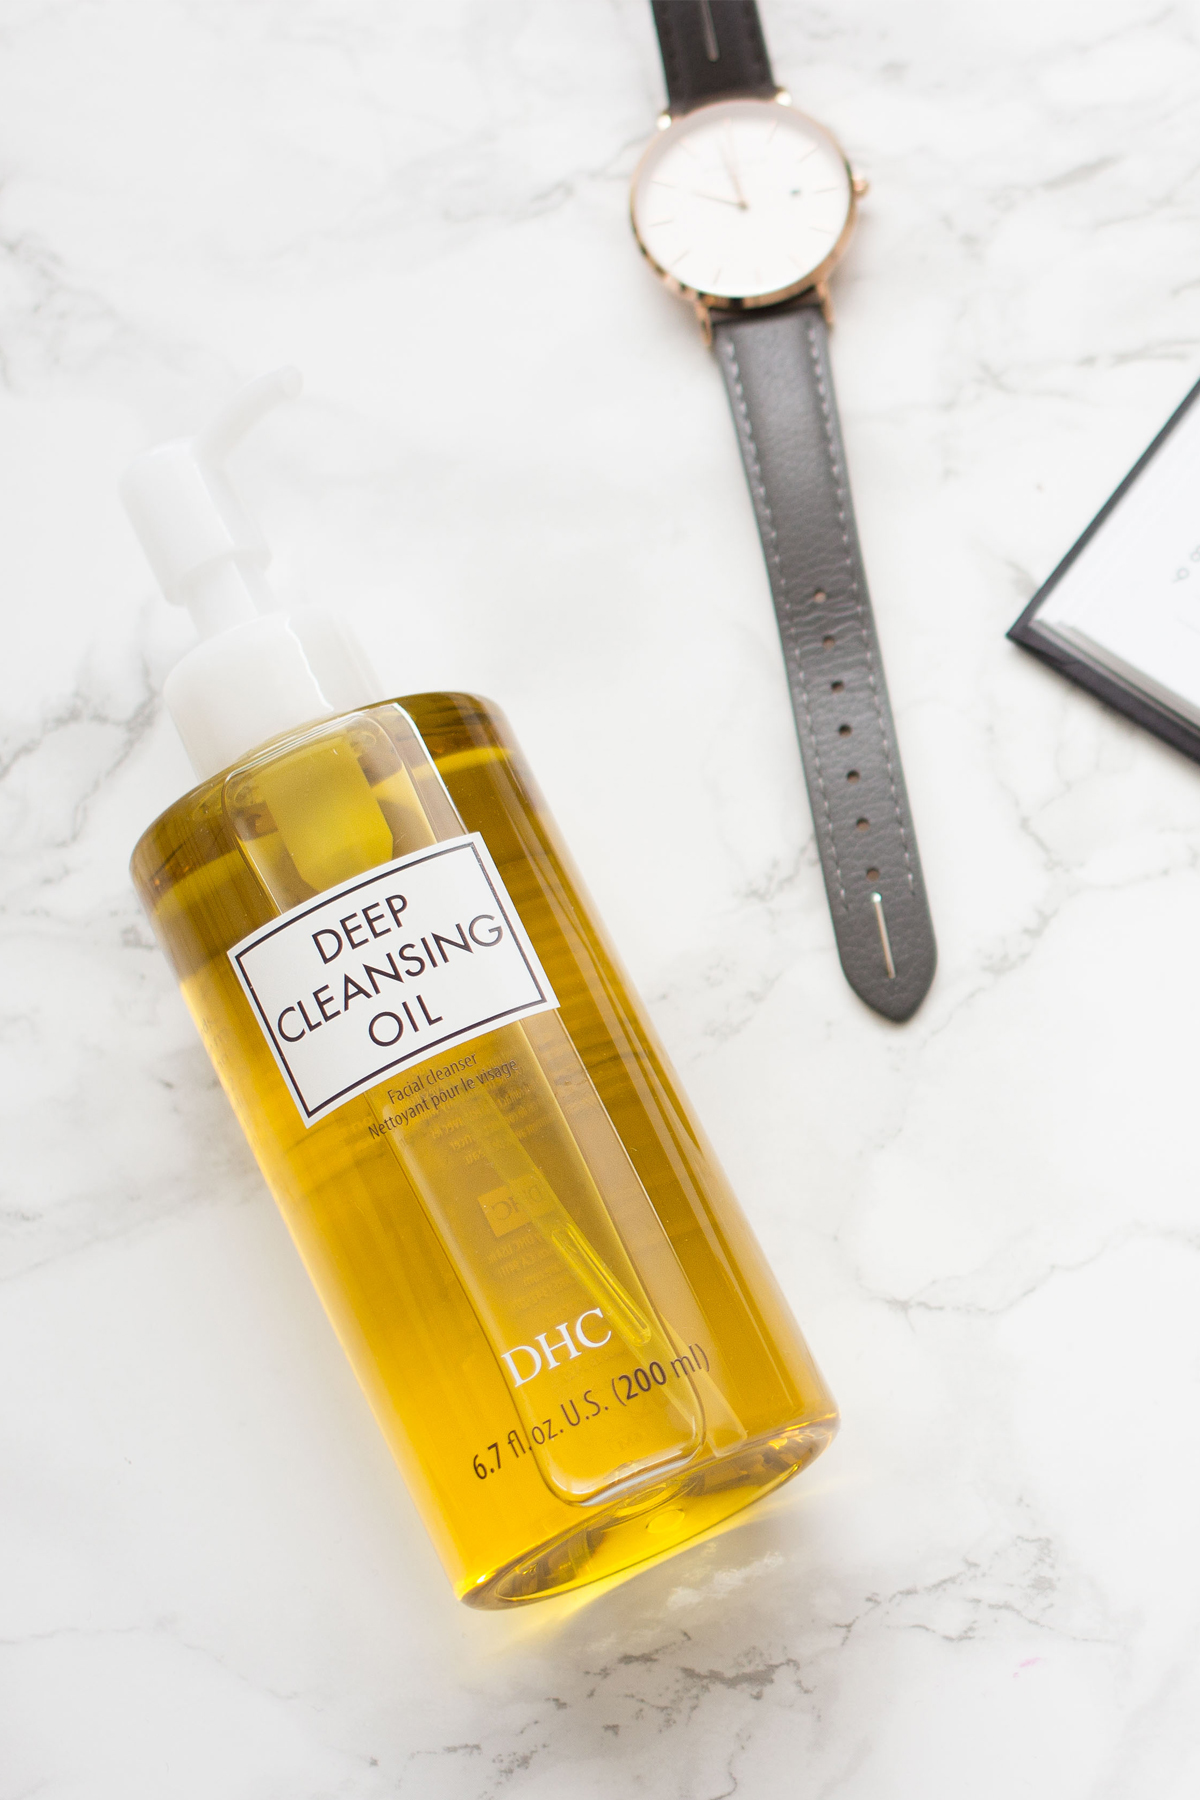 Let's talk about cleansing oils